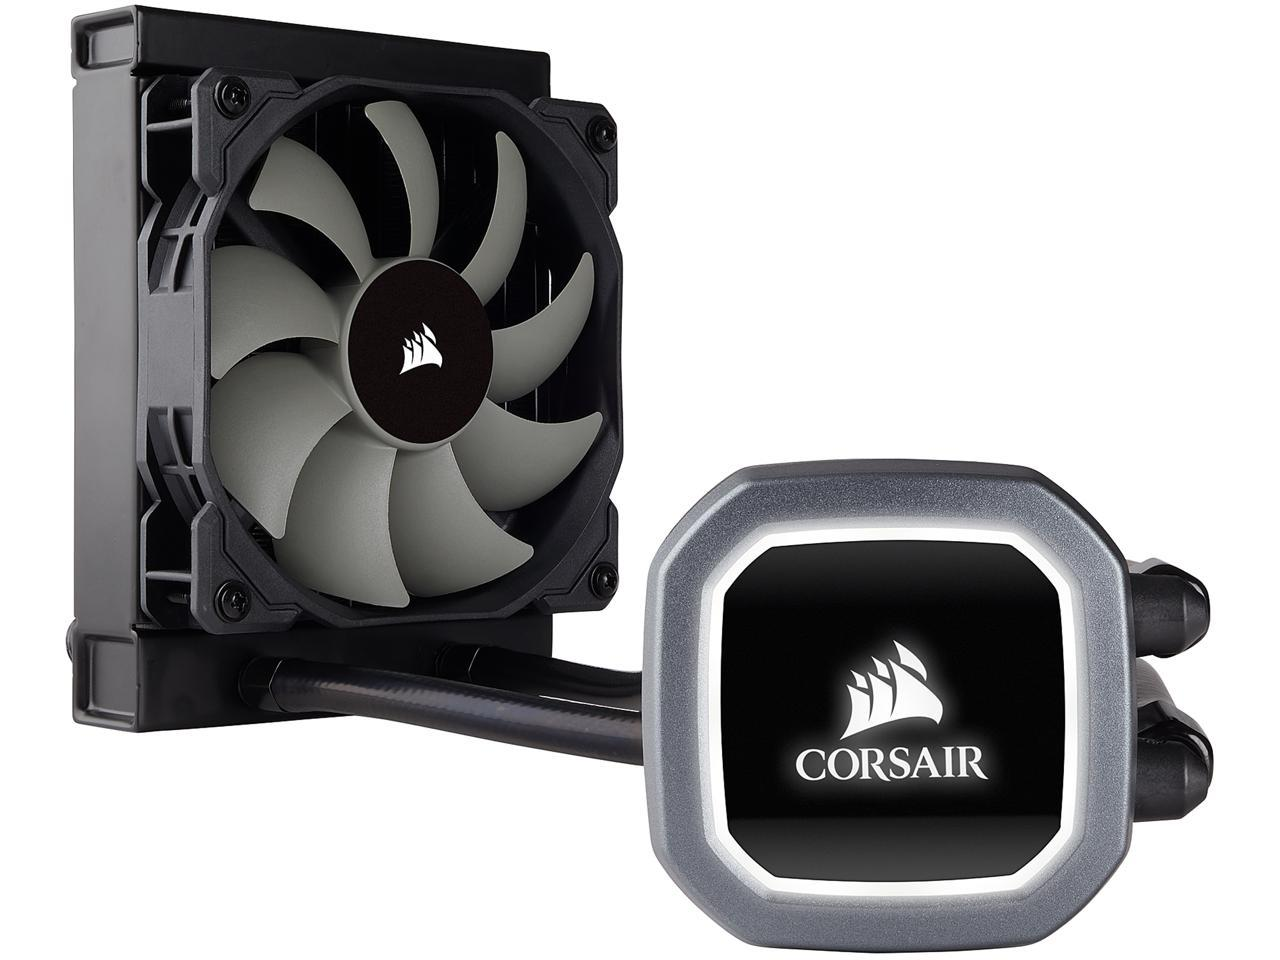 Corsair Hydro Series H60 2018 Liquid CPU Cooler CW-9060036-WW